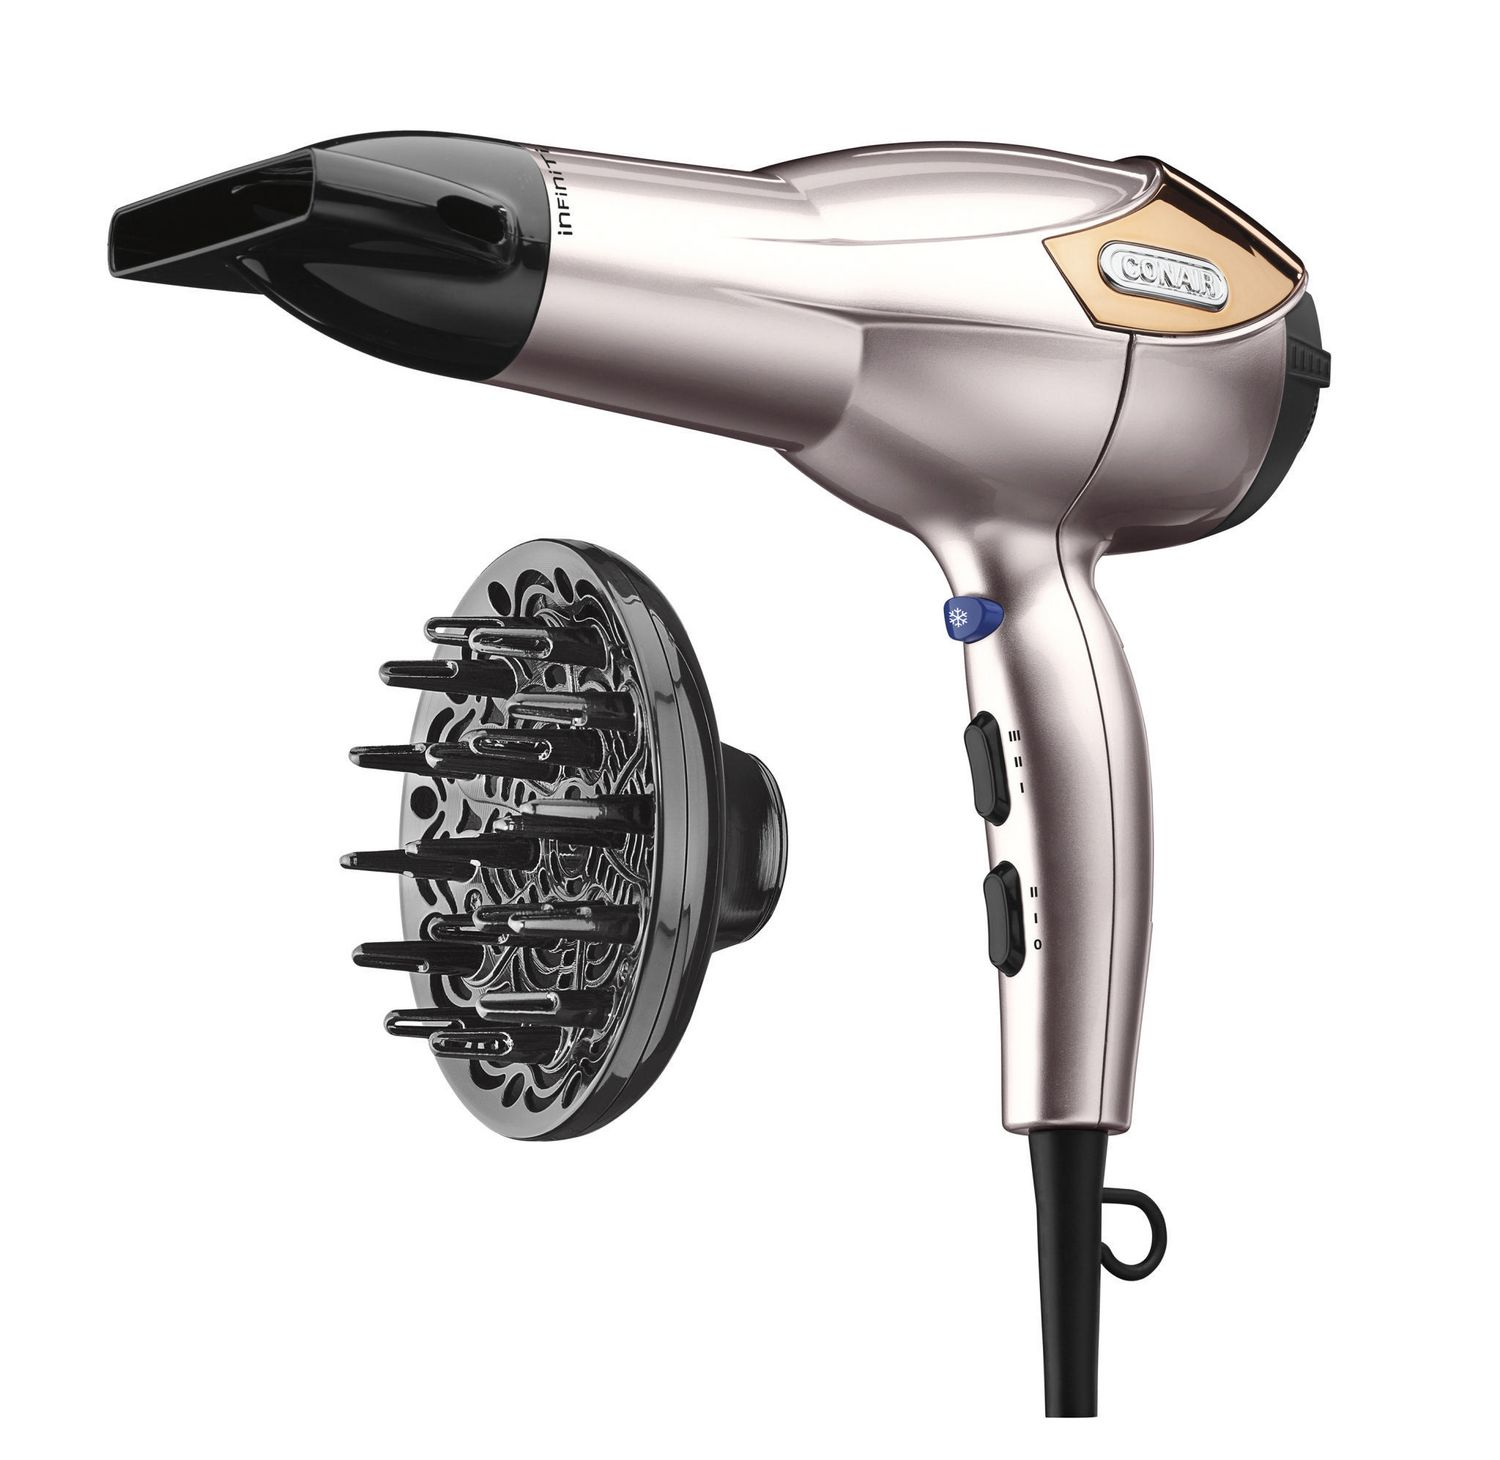 sears secret infiniti sharpen product hair outlet by op prod pro jsp spin wid dryer d curl hei infinity details conair